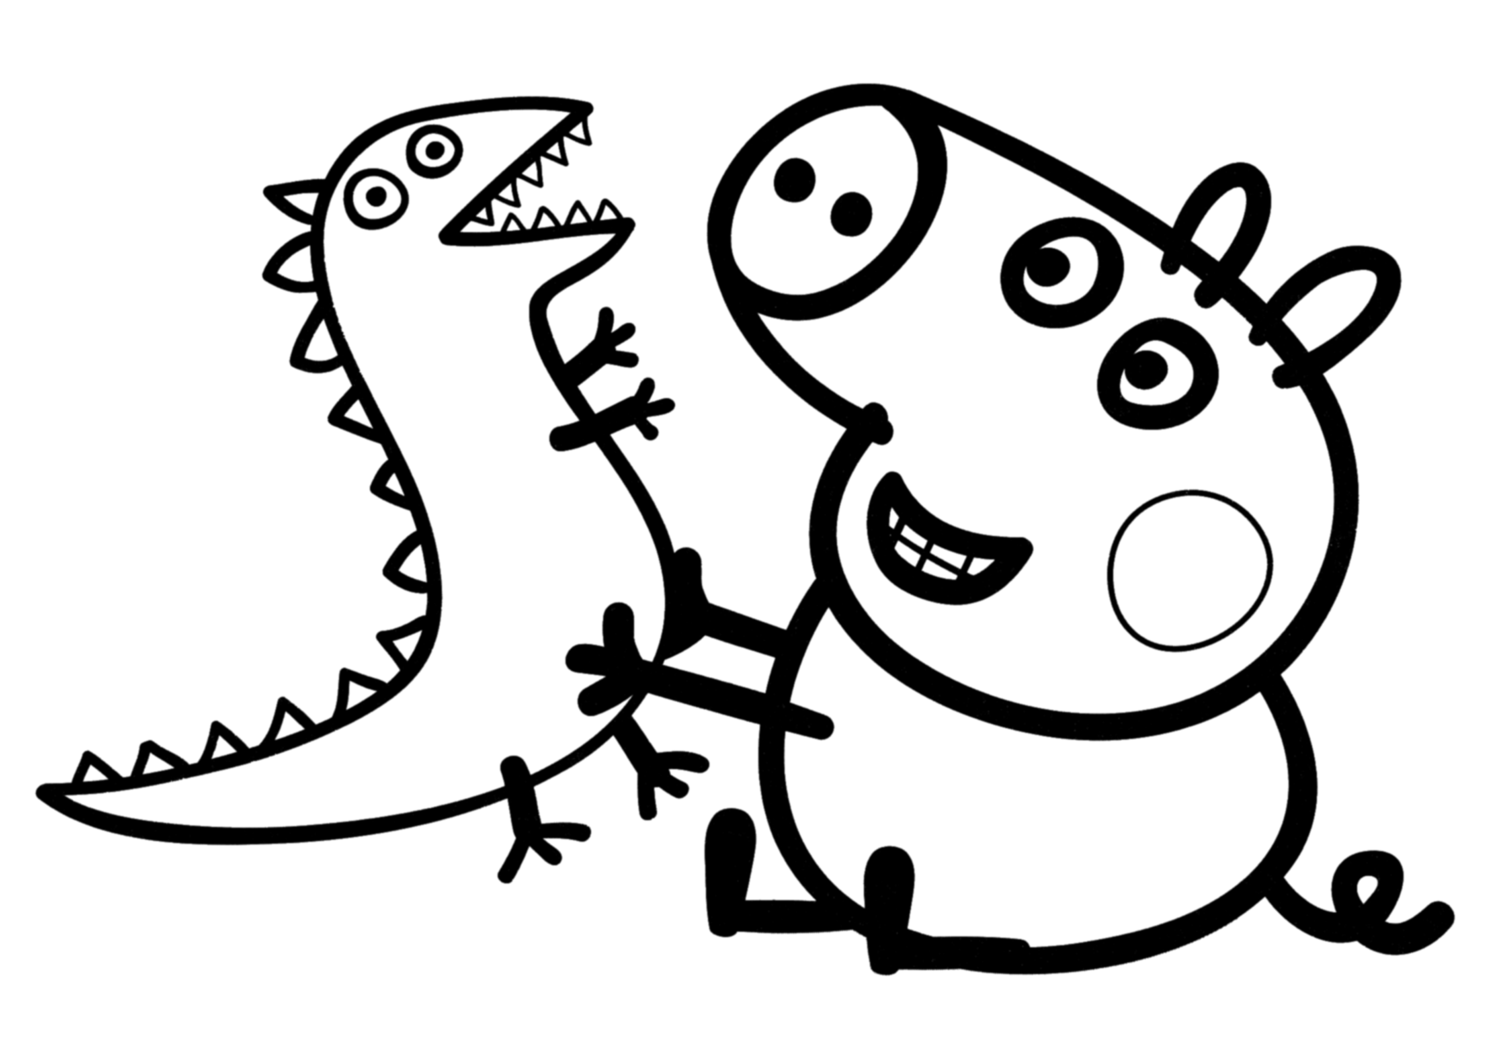 Coloring Pages To Print Peppa Pig : Free coloring pages of peppa pig